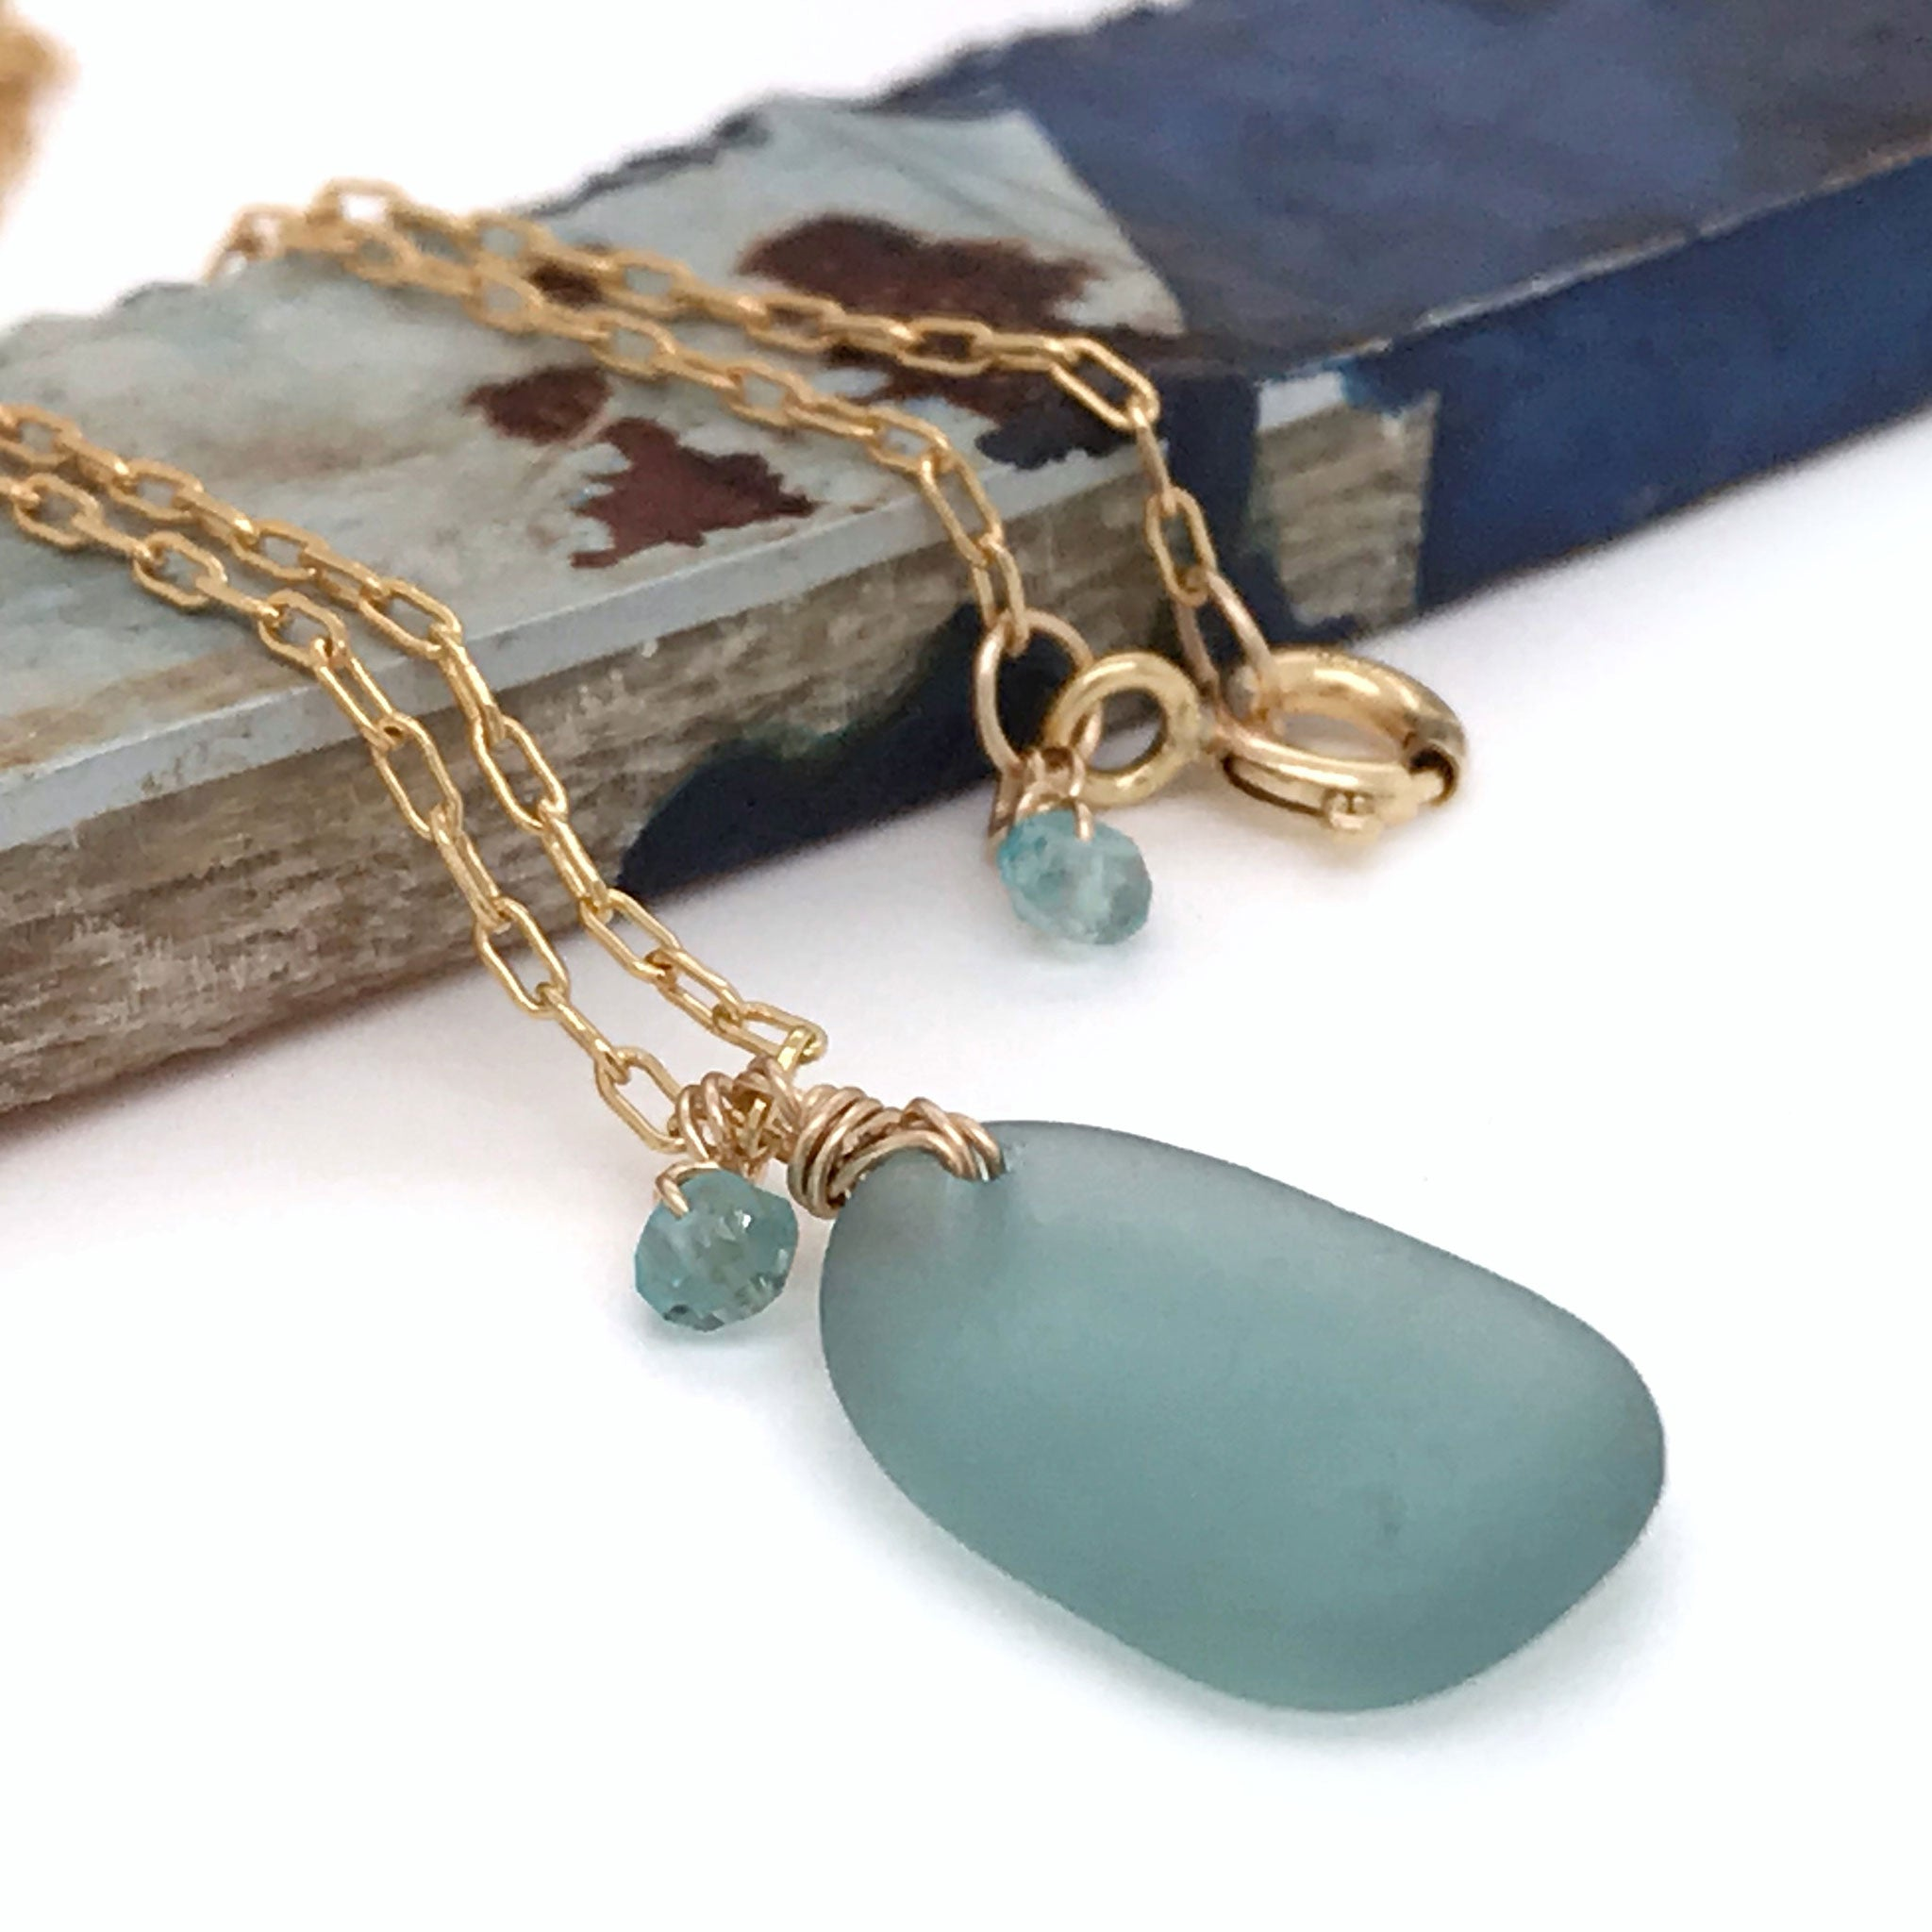 aqua beach glass on gold chain kriket broadhurst jewellery